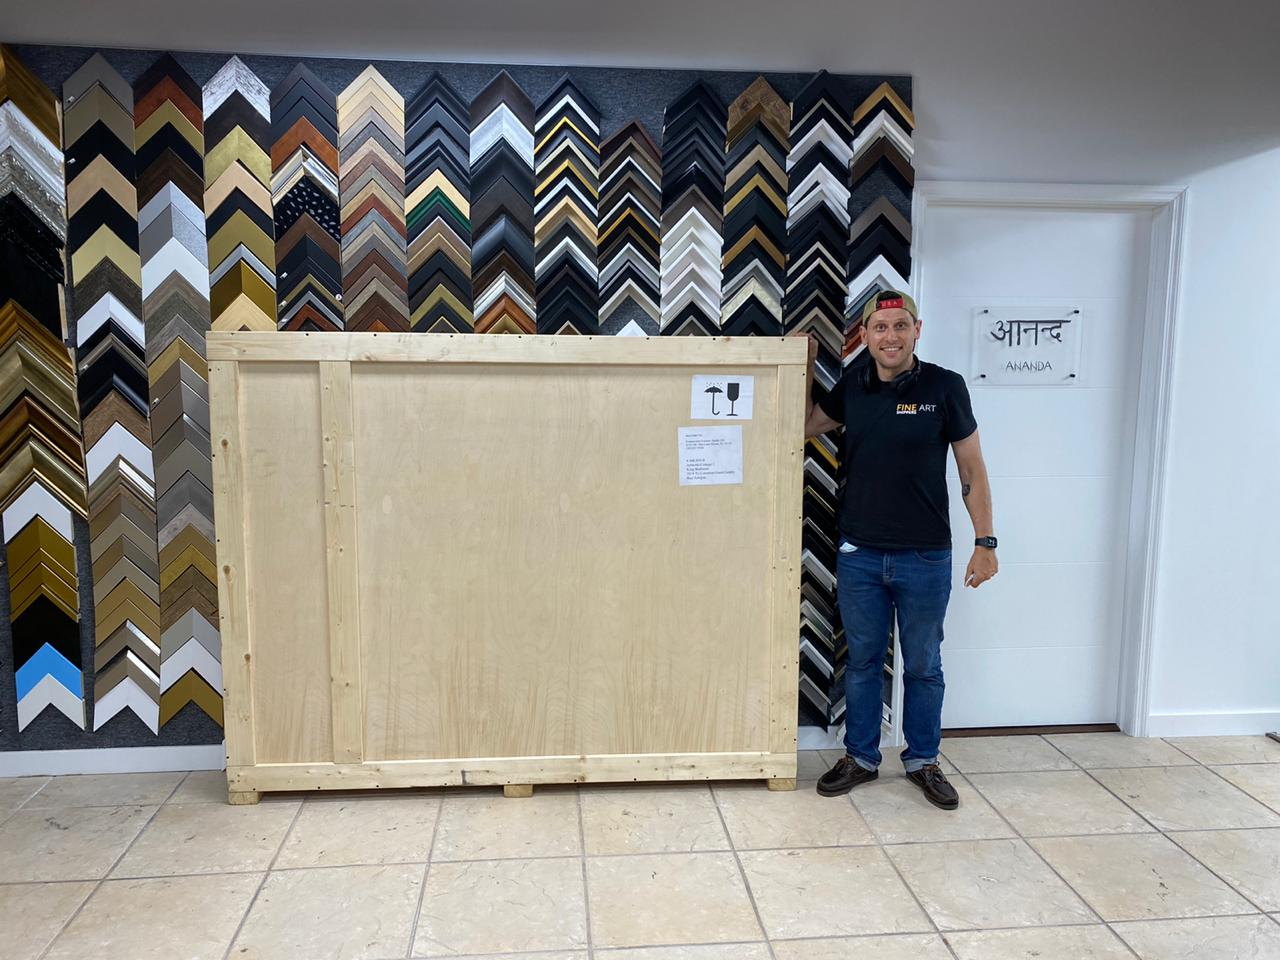 Expert Art Services in NYC: Crate Fabrication